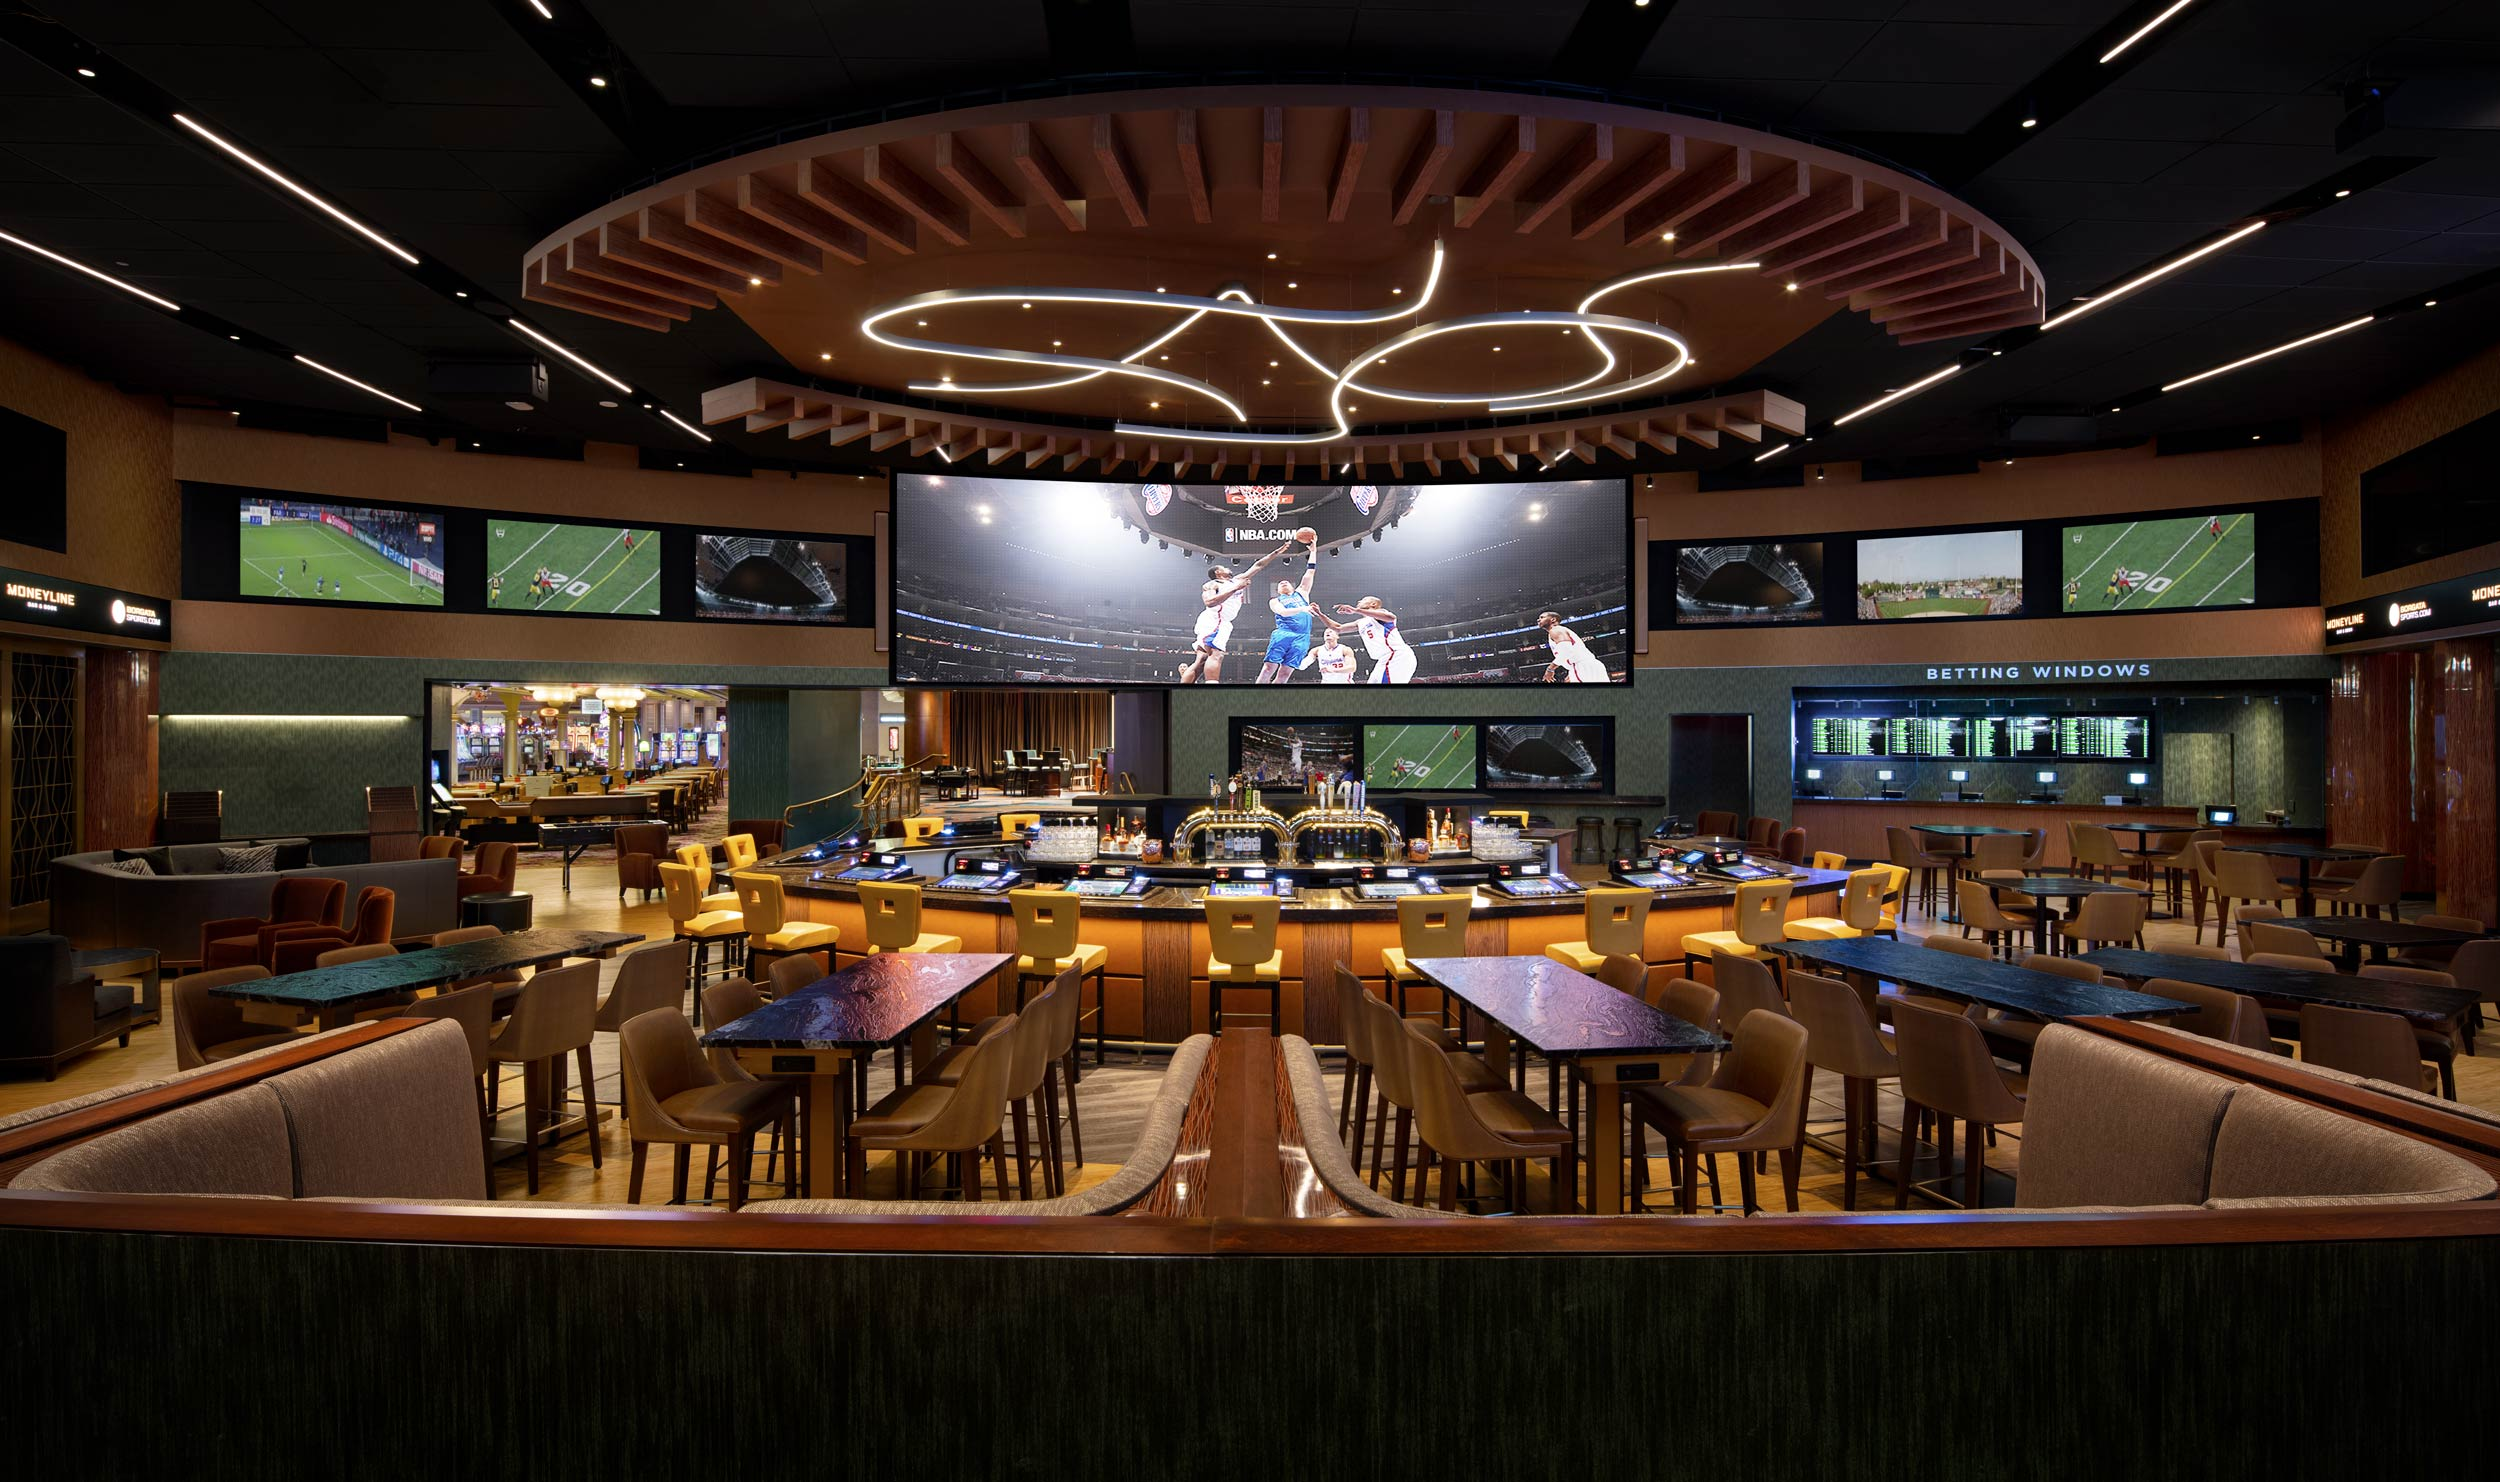 Moneyline Sportsbook Bar at the Borgata Casino in Atlantic City